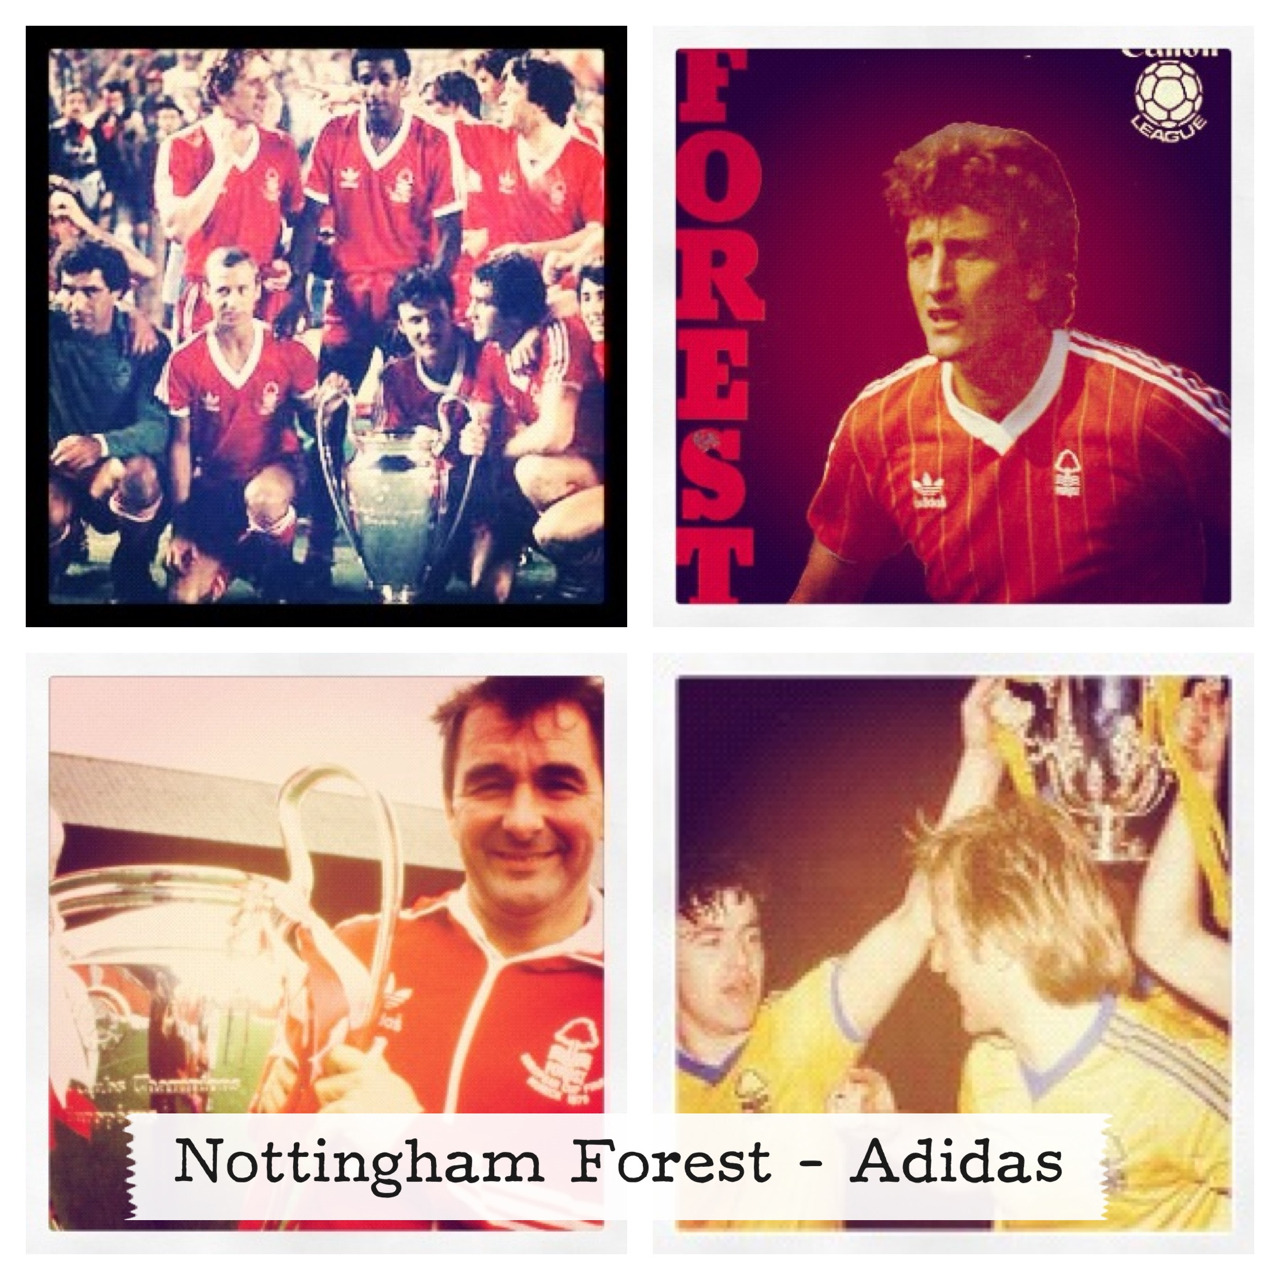 Nottingham Forest, Adidas, 1978-1986